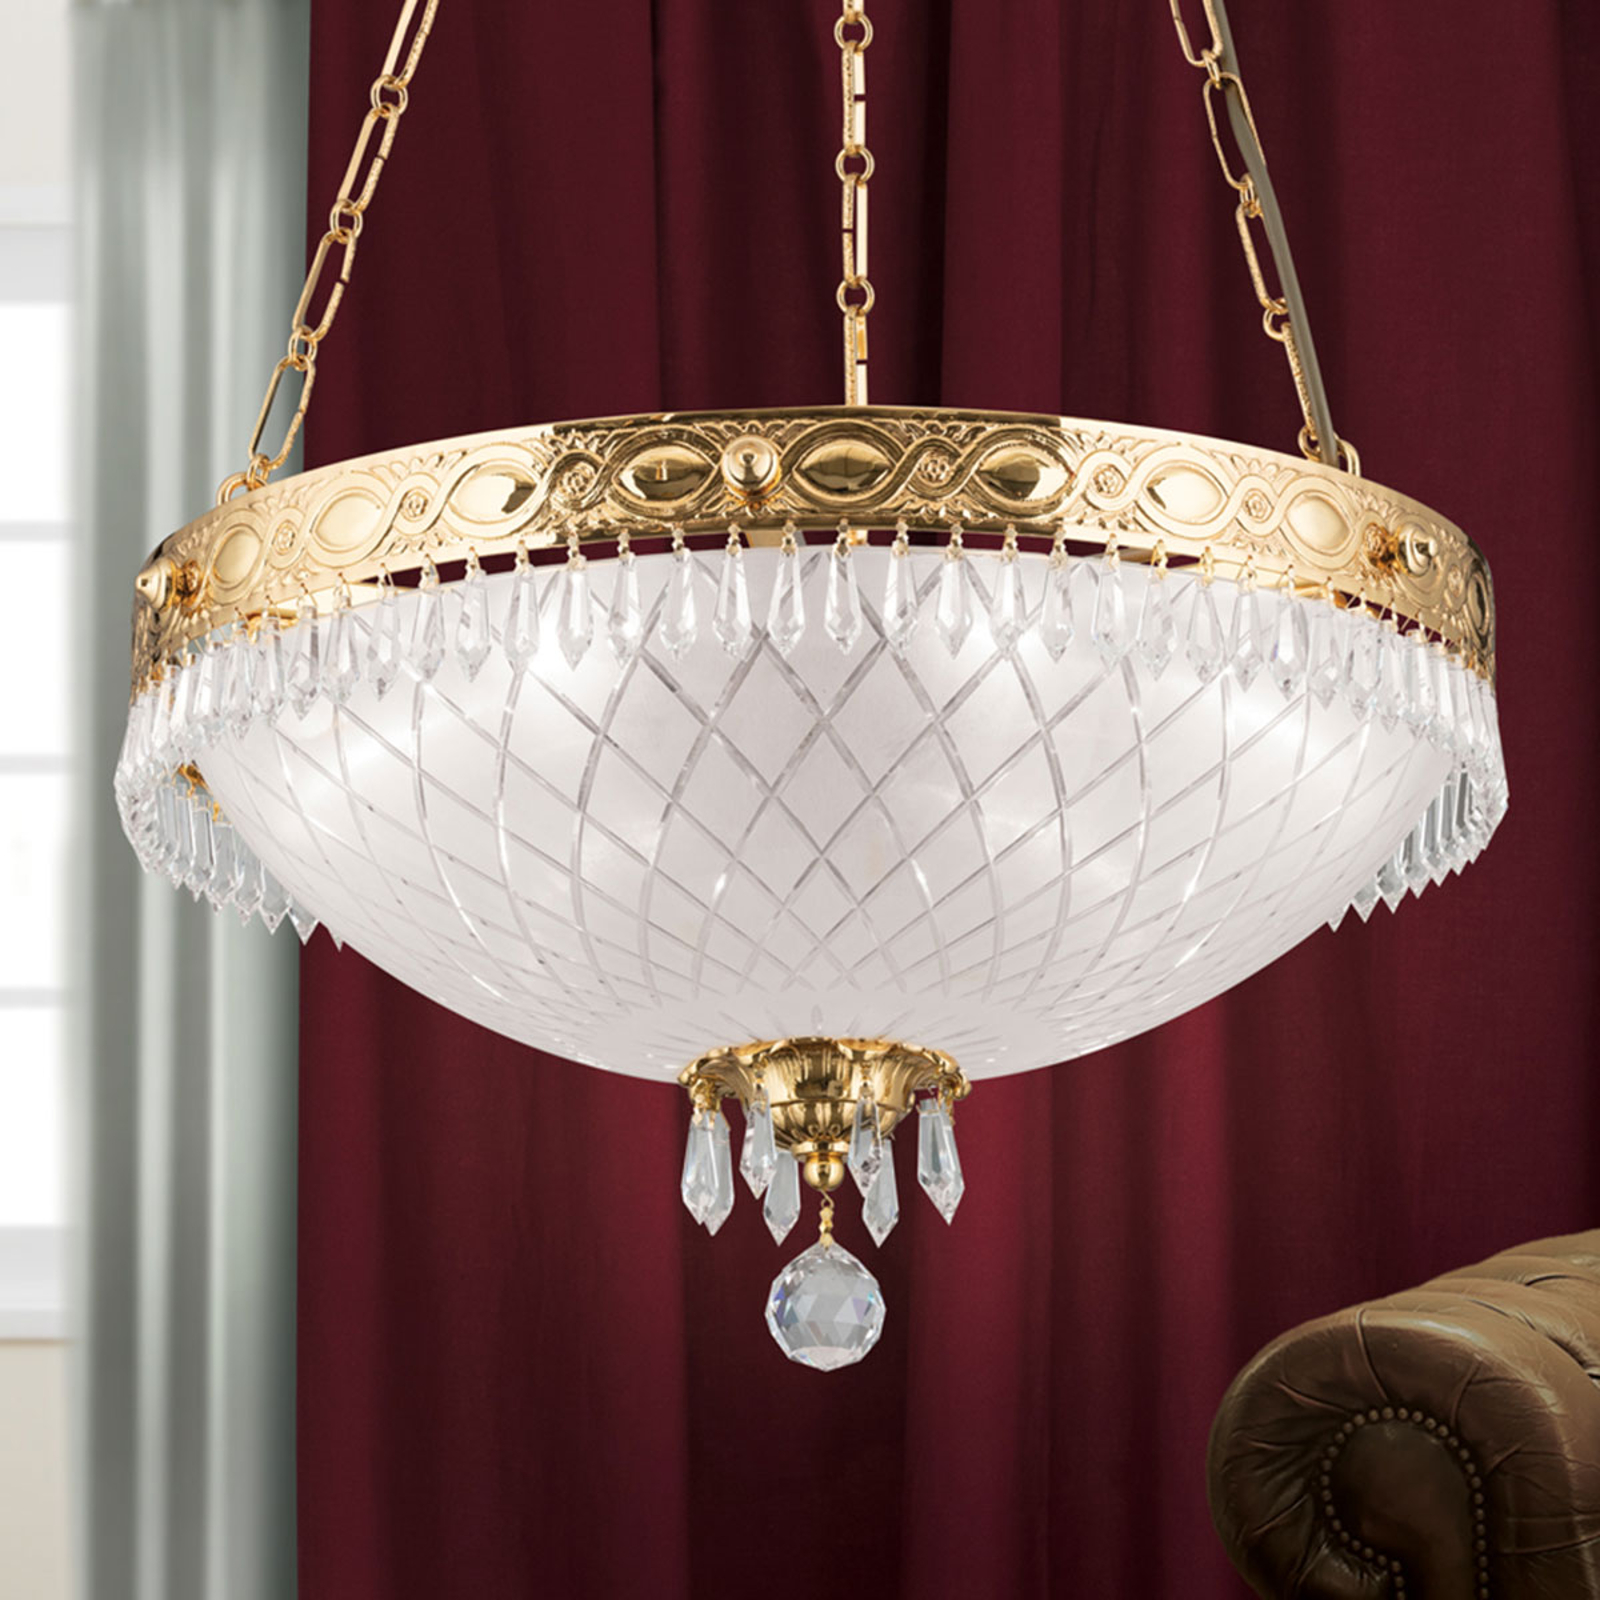 Hanglamp Empire Crystal goud